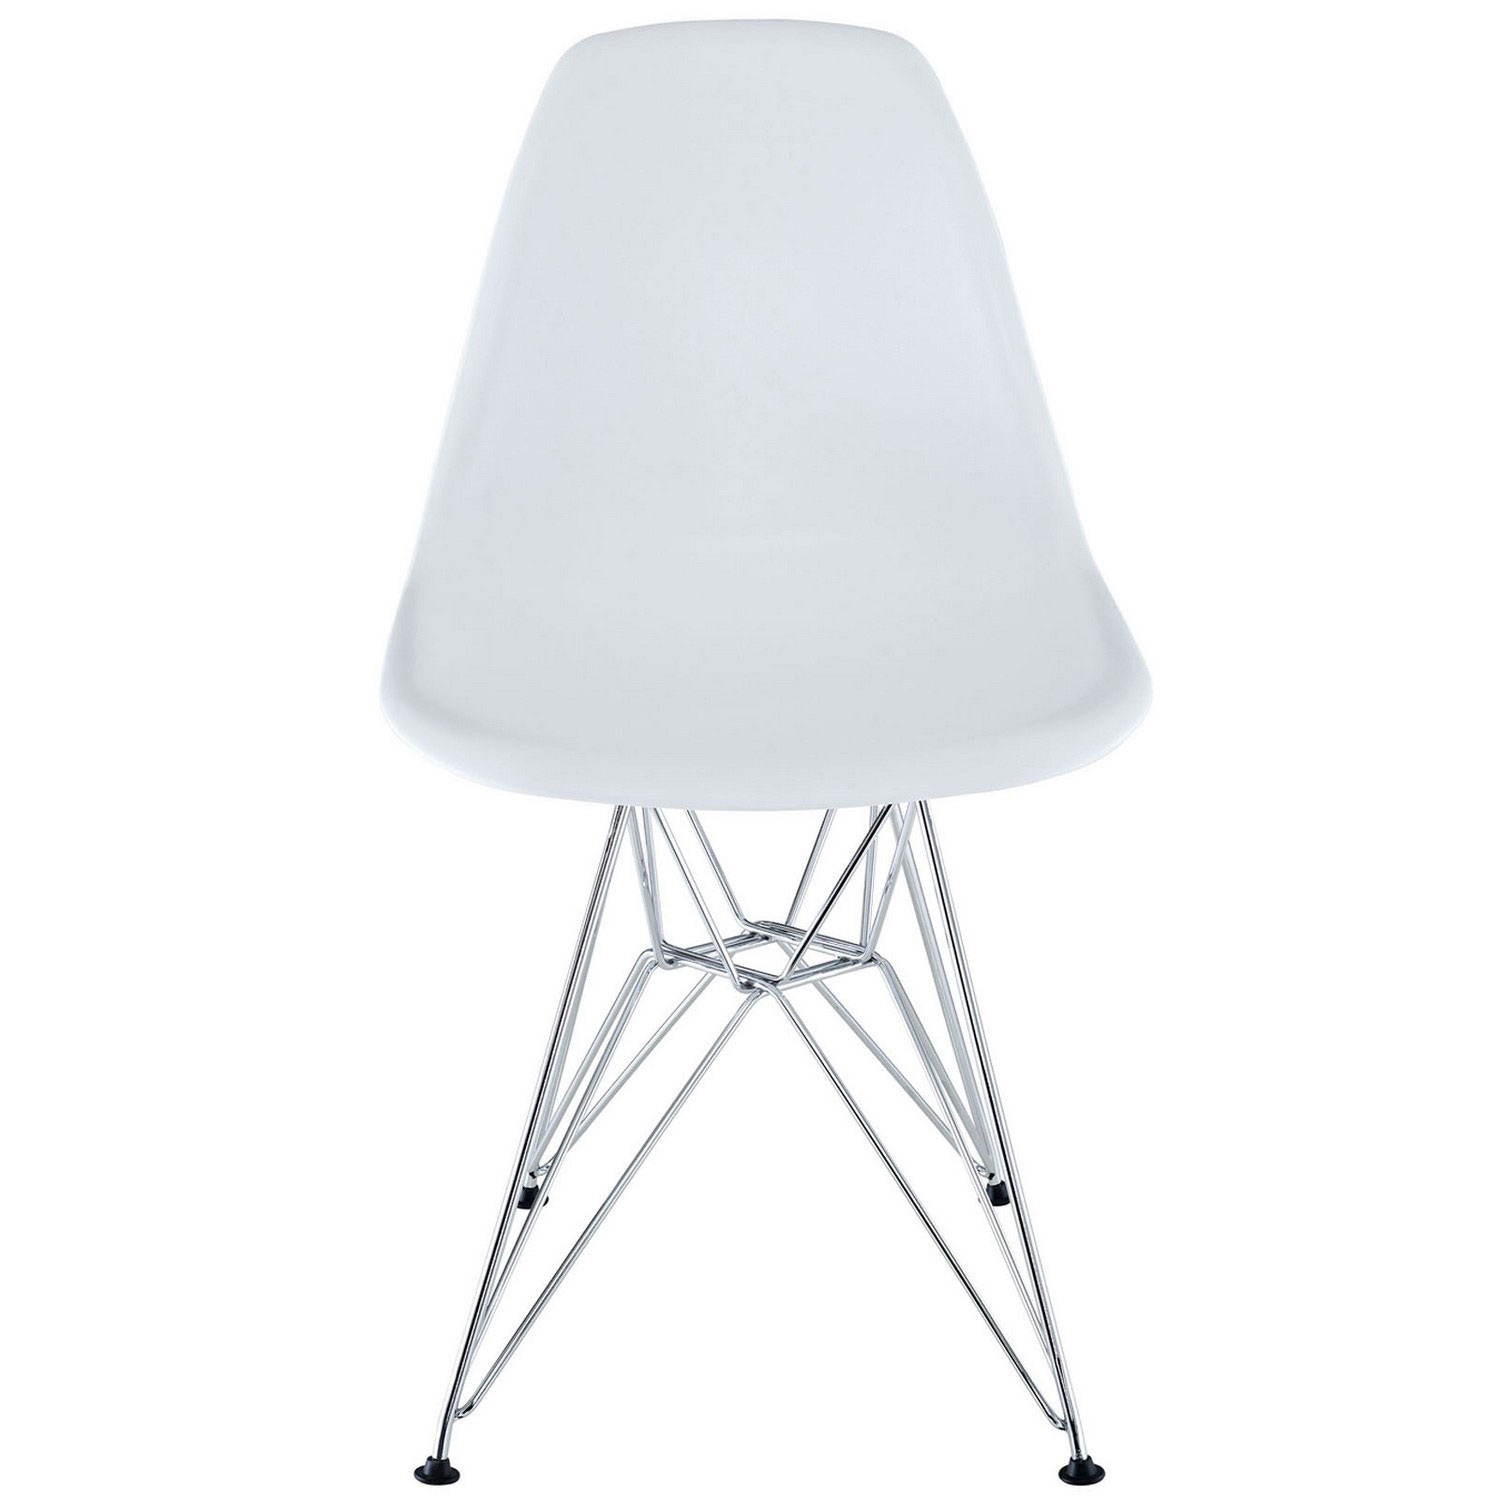 Modway Paris Dining Side Chair - White